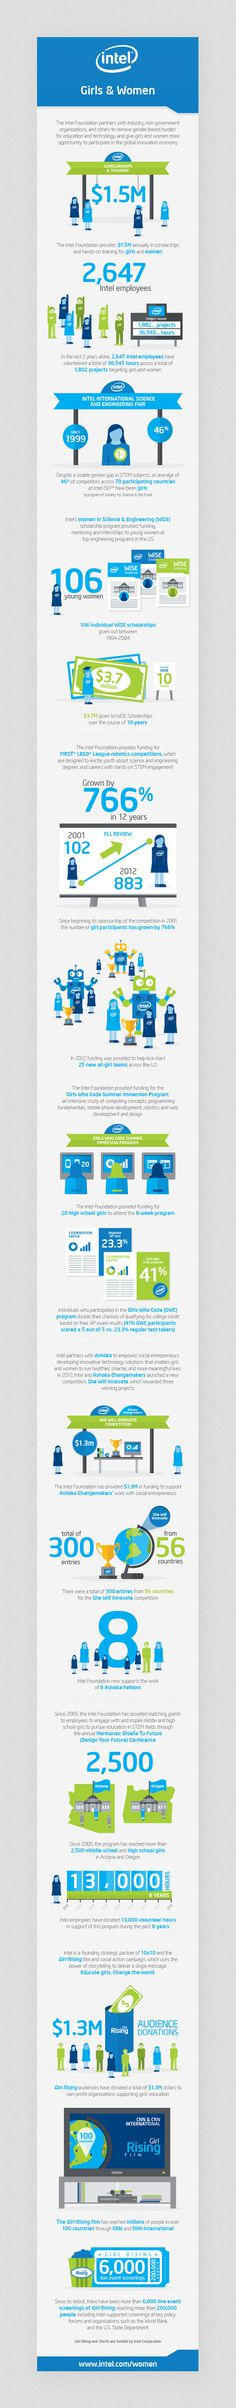 Intel Foundation 25th Anniversary // Infographics on Behance #infographic